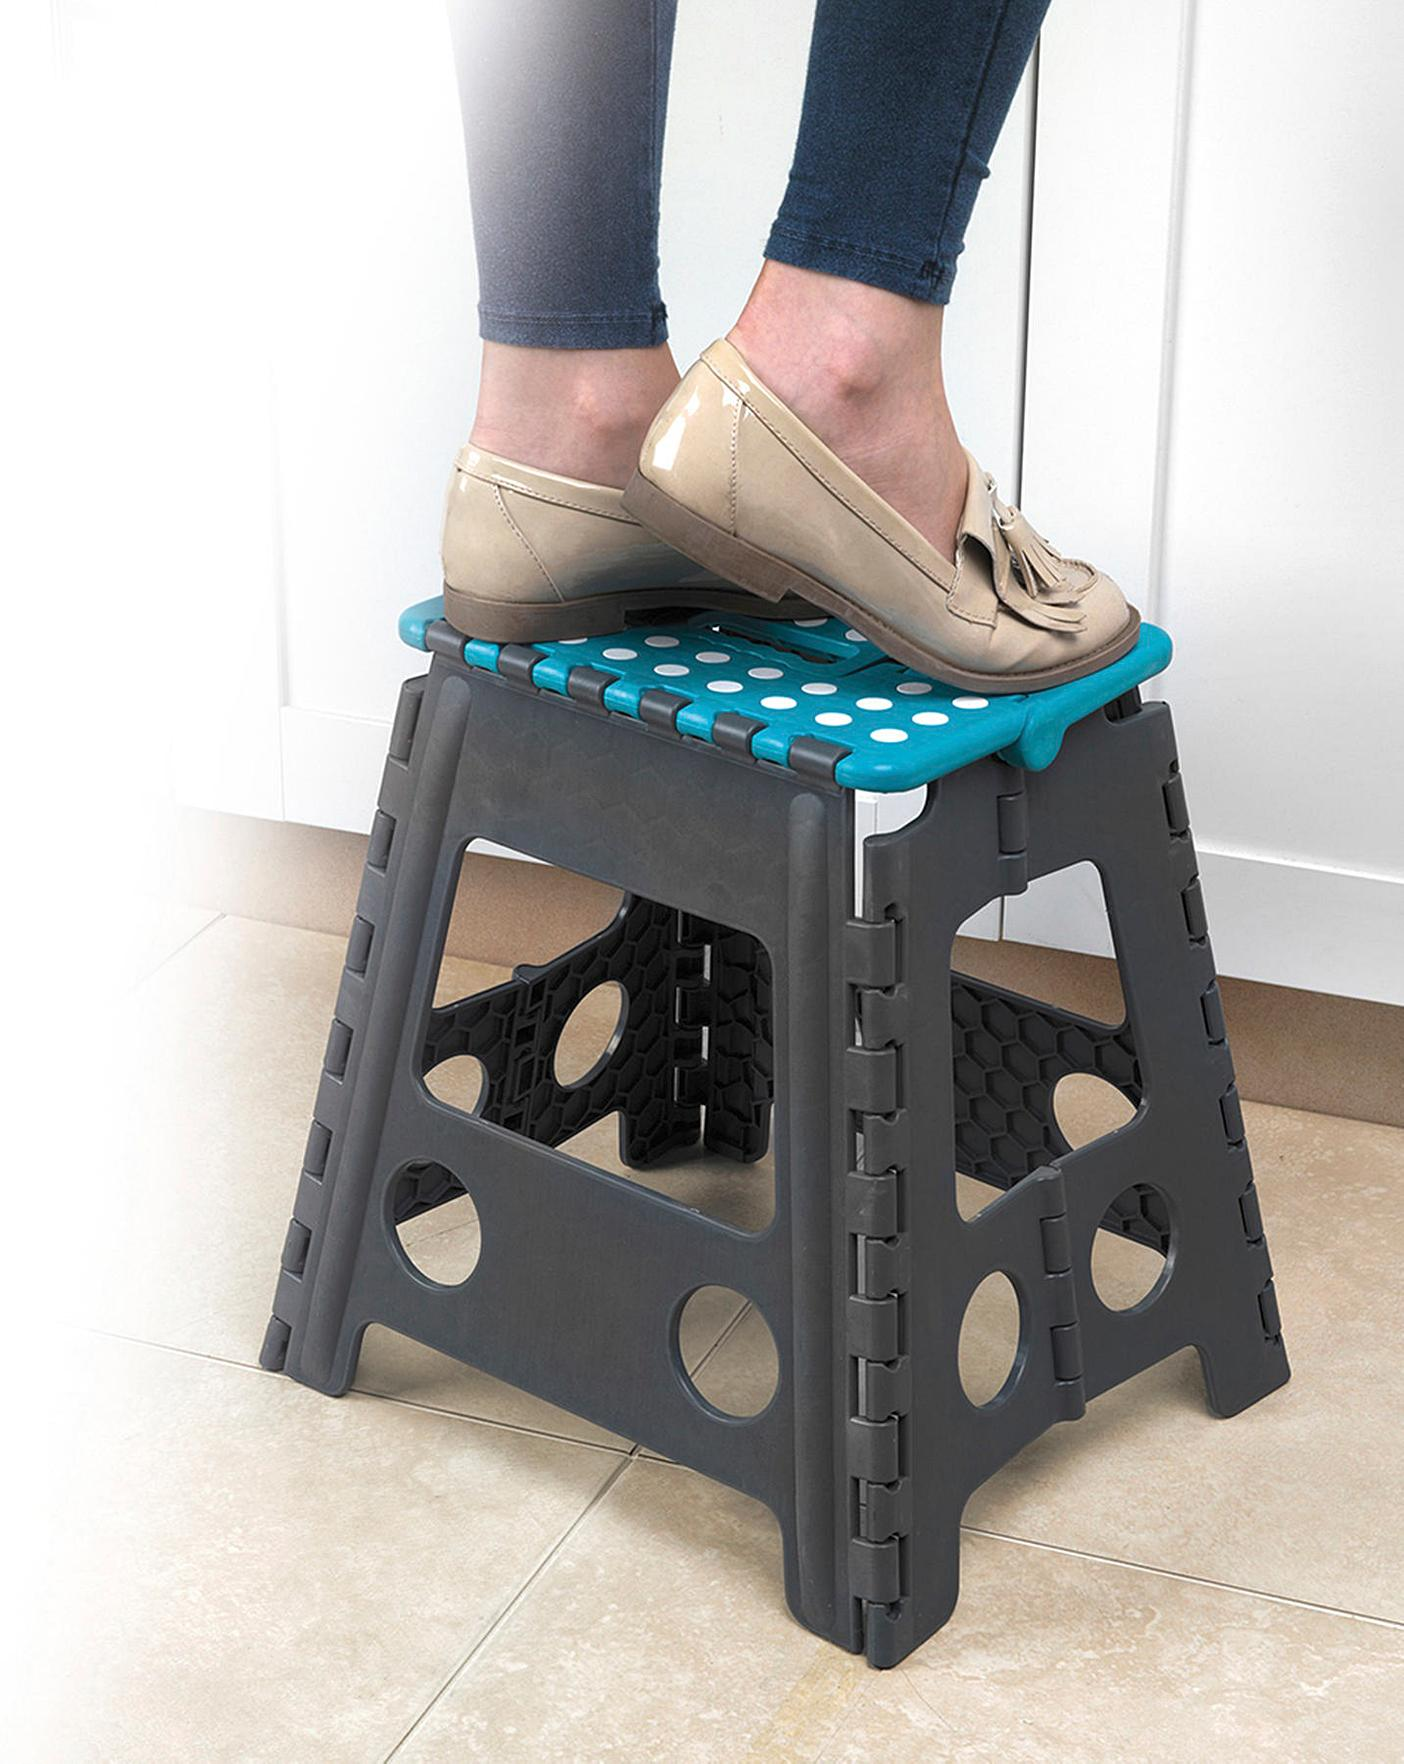 Magnificent Beldray Folding Step Stool Small Ncnpc Chair Design For Home Ncnpcorg